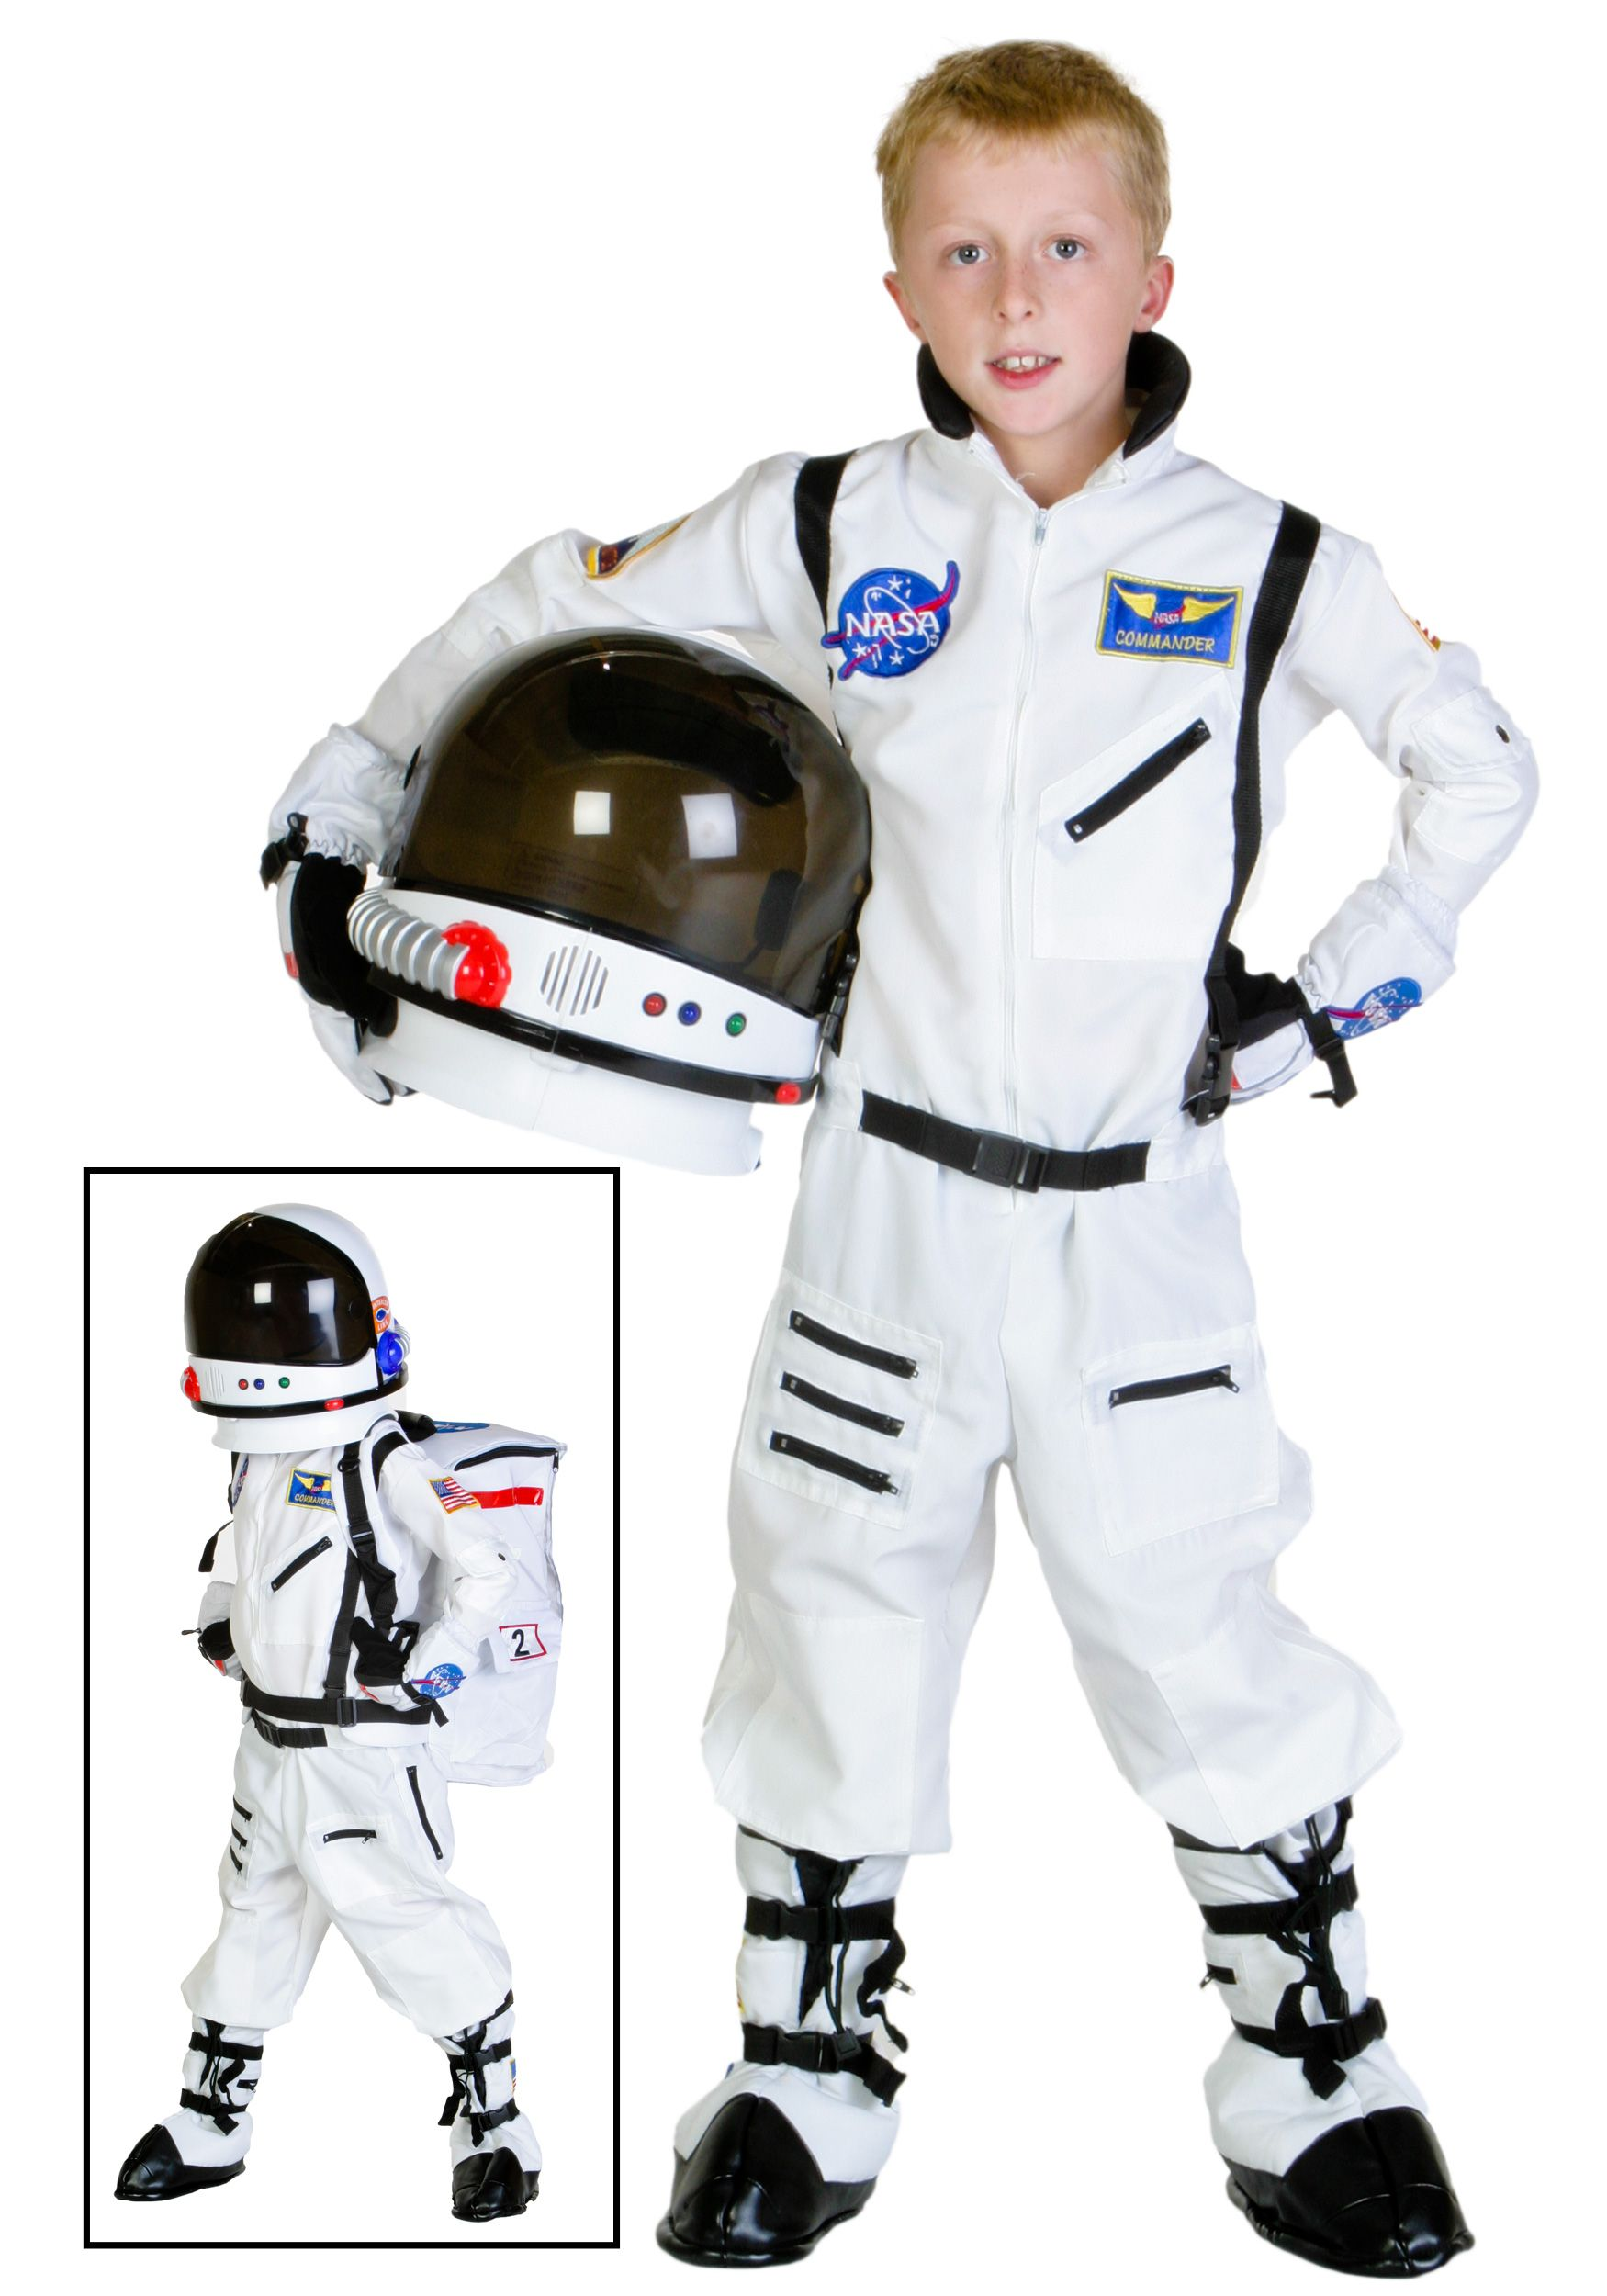 Astronaut costumes for kids home halloween costume ideas for Diy halloween costumes for kid boy